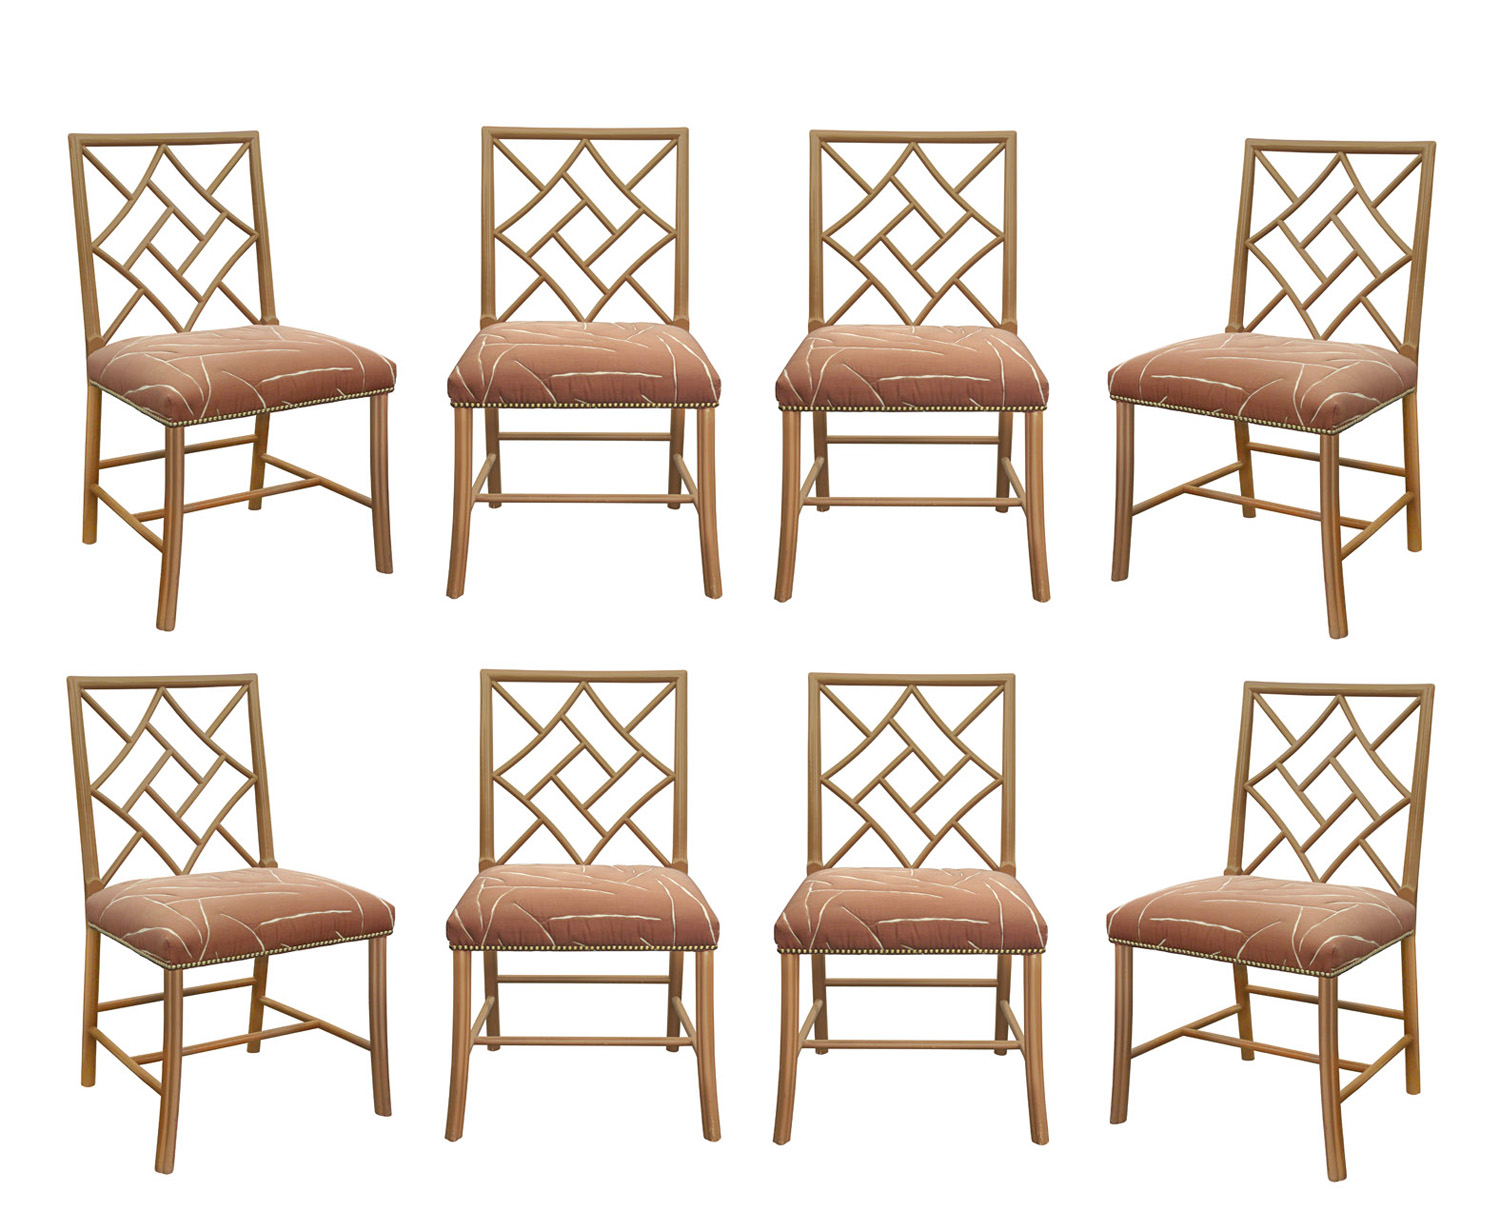 70s 180 Haines mnnr set8 brown lqr diningchairs165 hires a.jpg